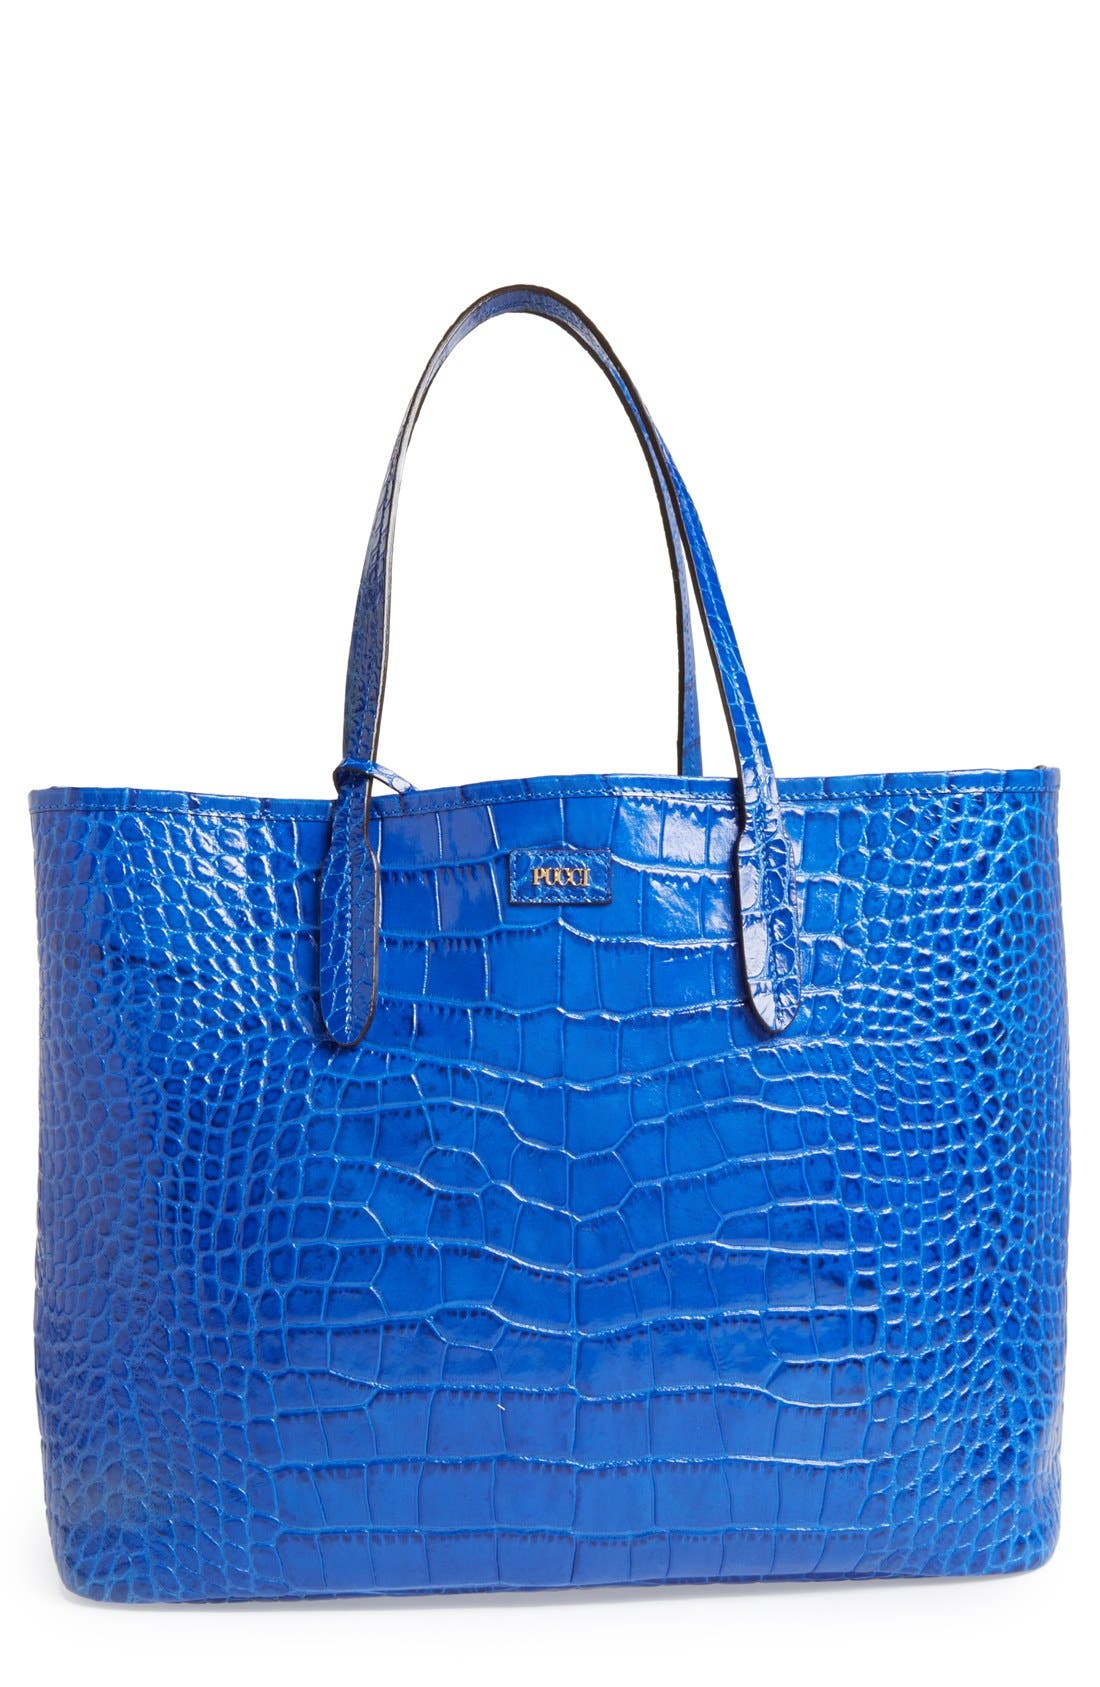 Alternate Image 1 Selected - Emilio Pucci Croc Embossed Leather Tote